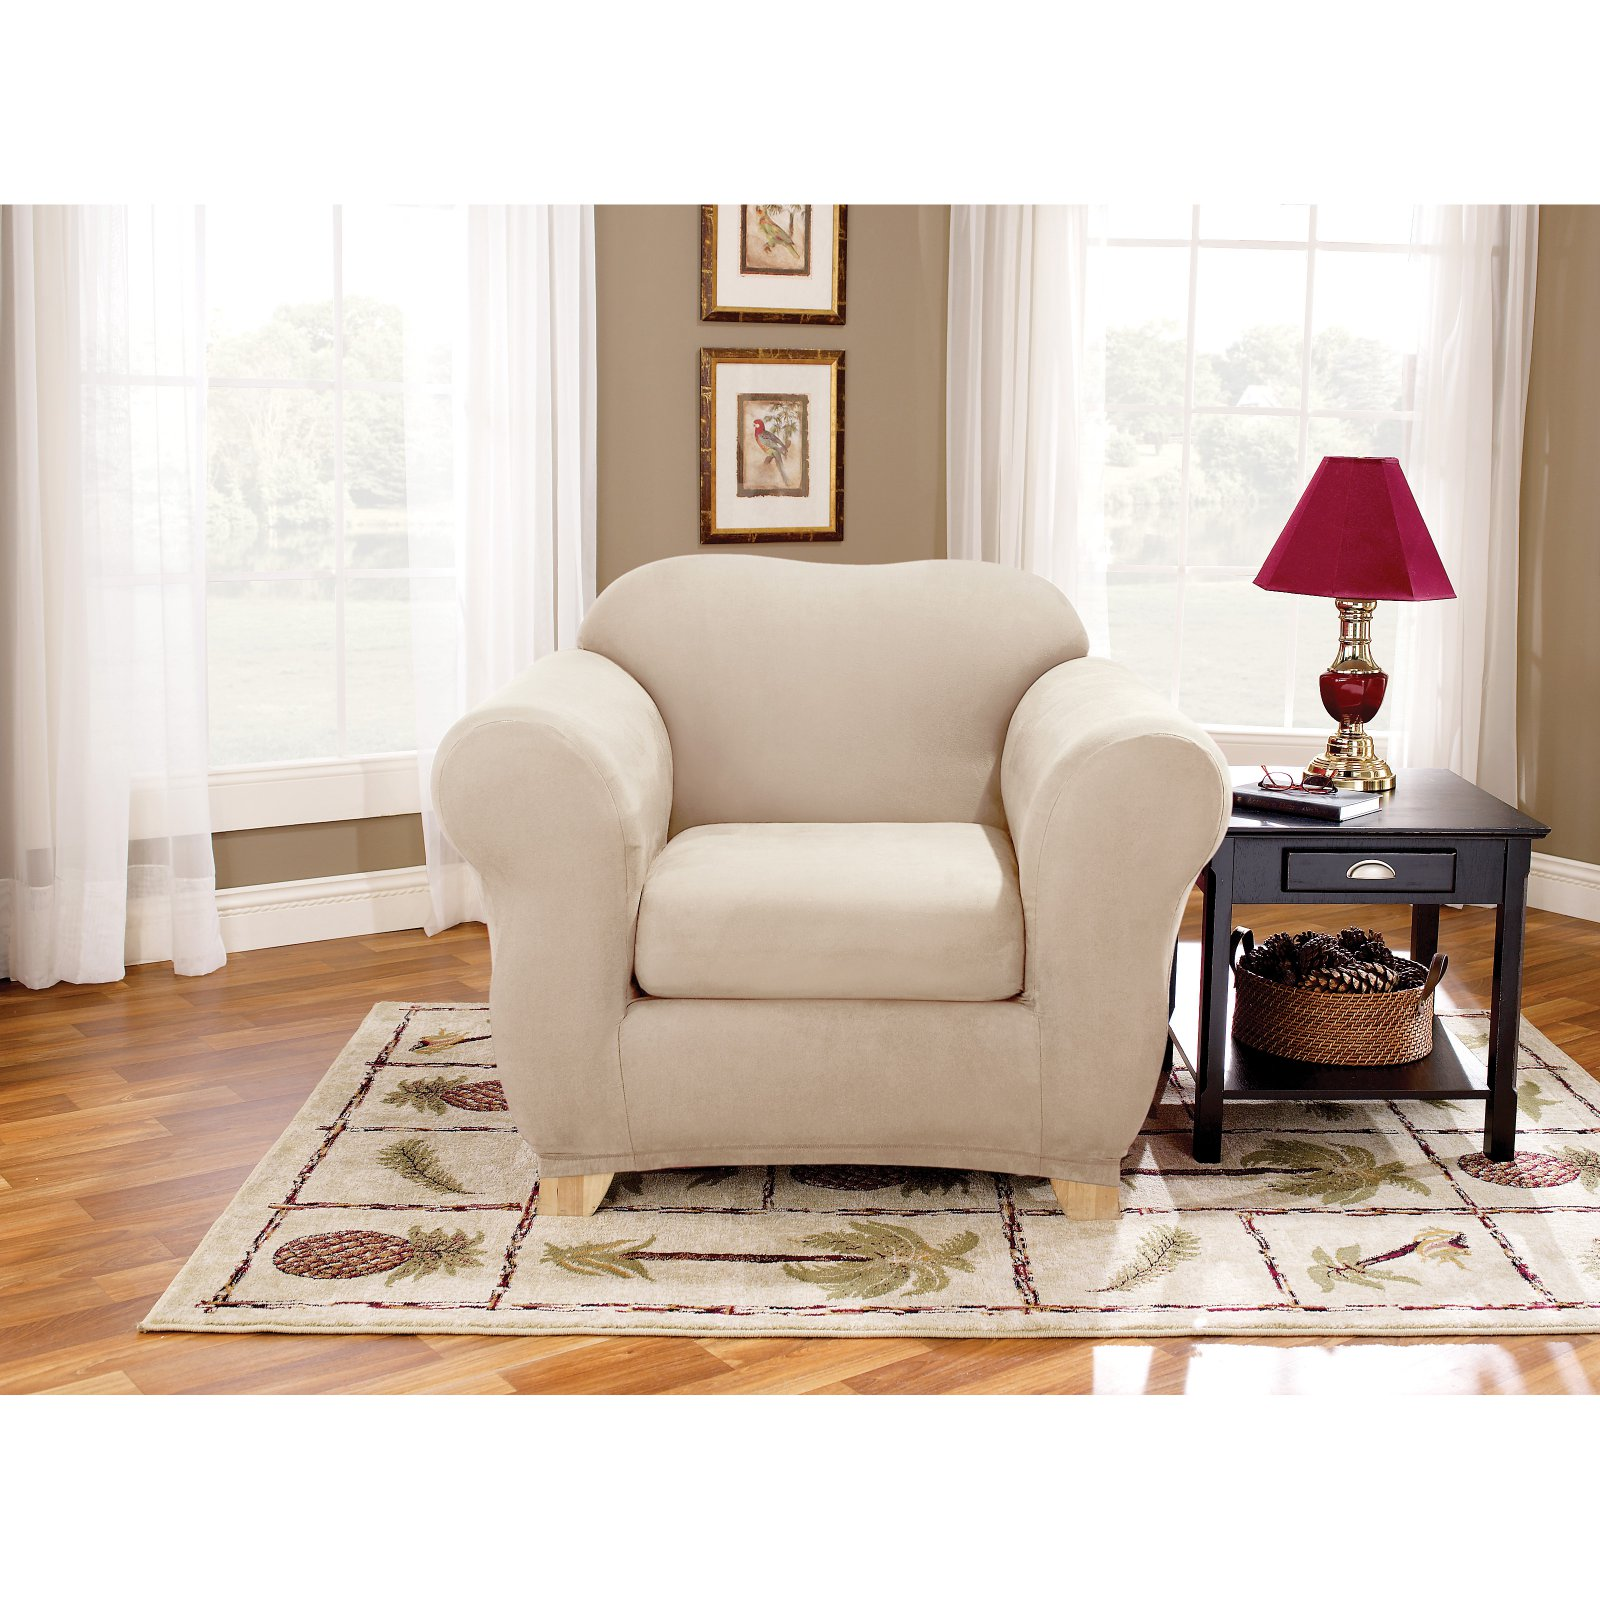 Sure Fit Stretch Suede Chair Stretchable Slipcover